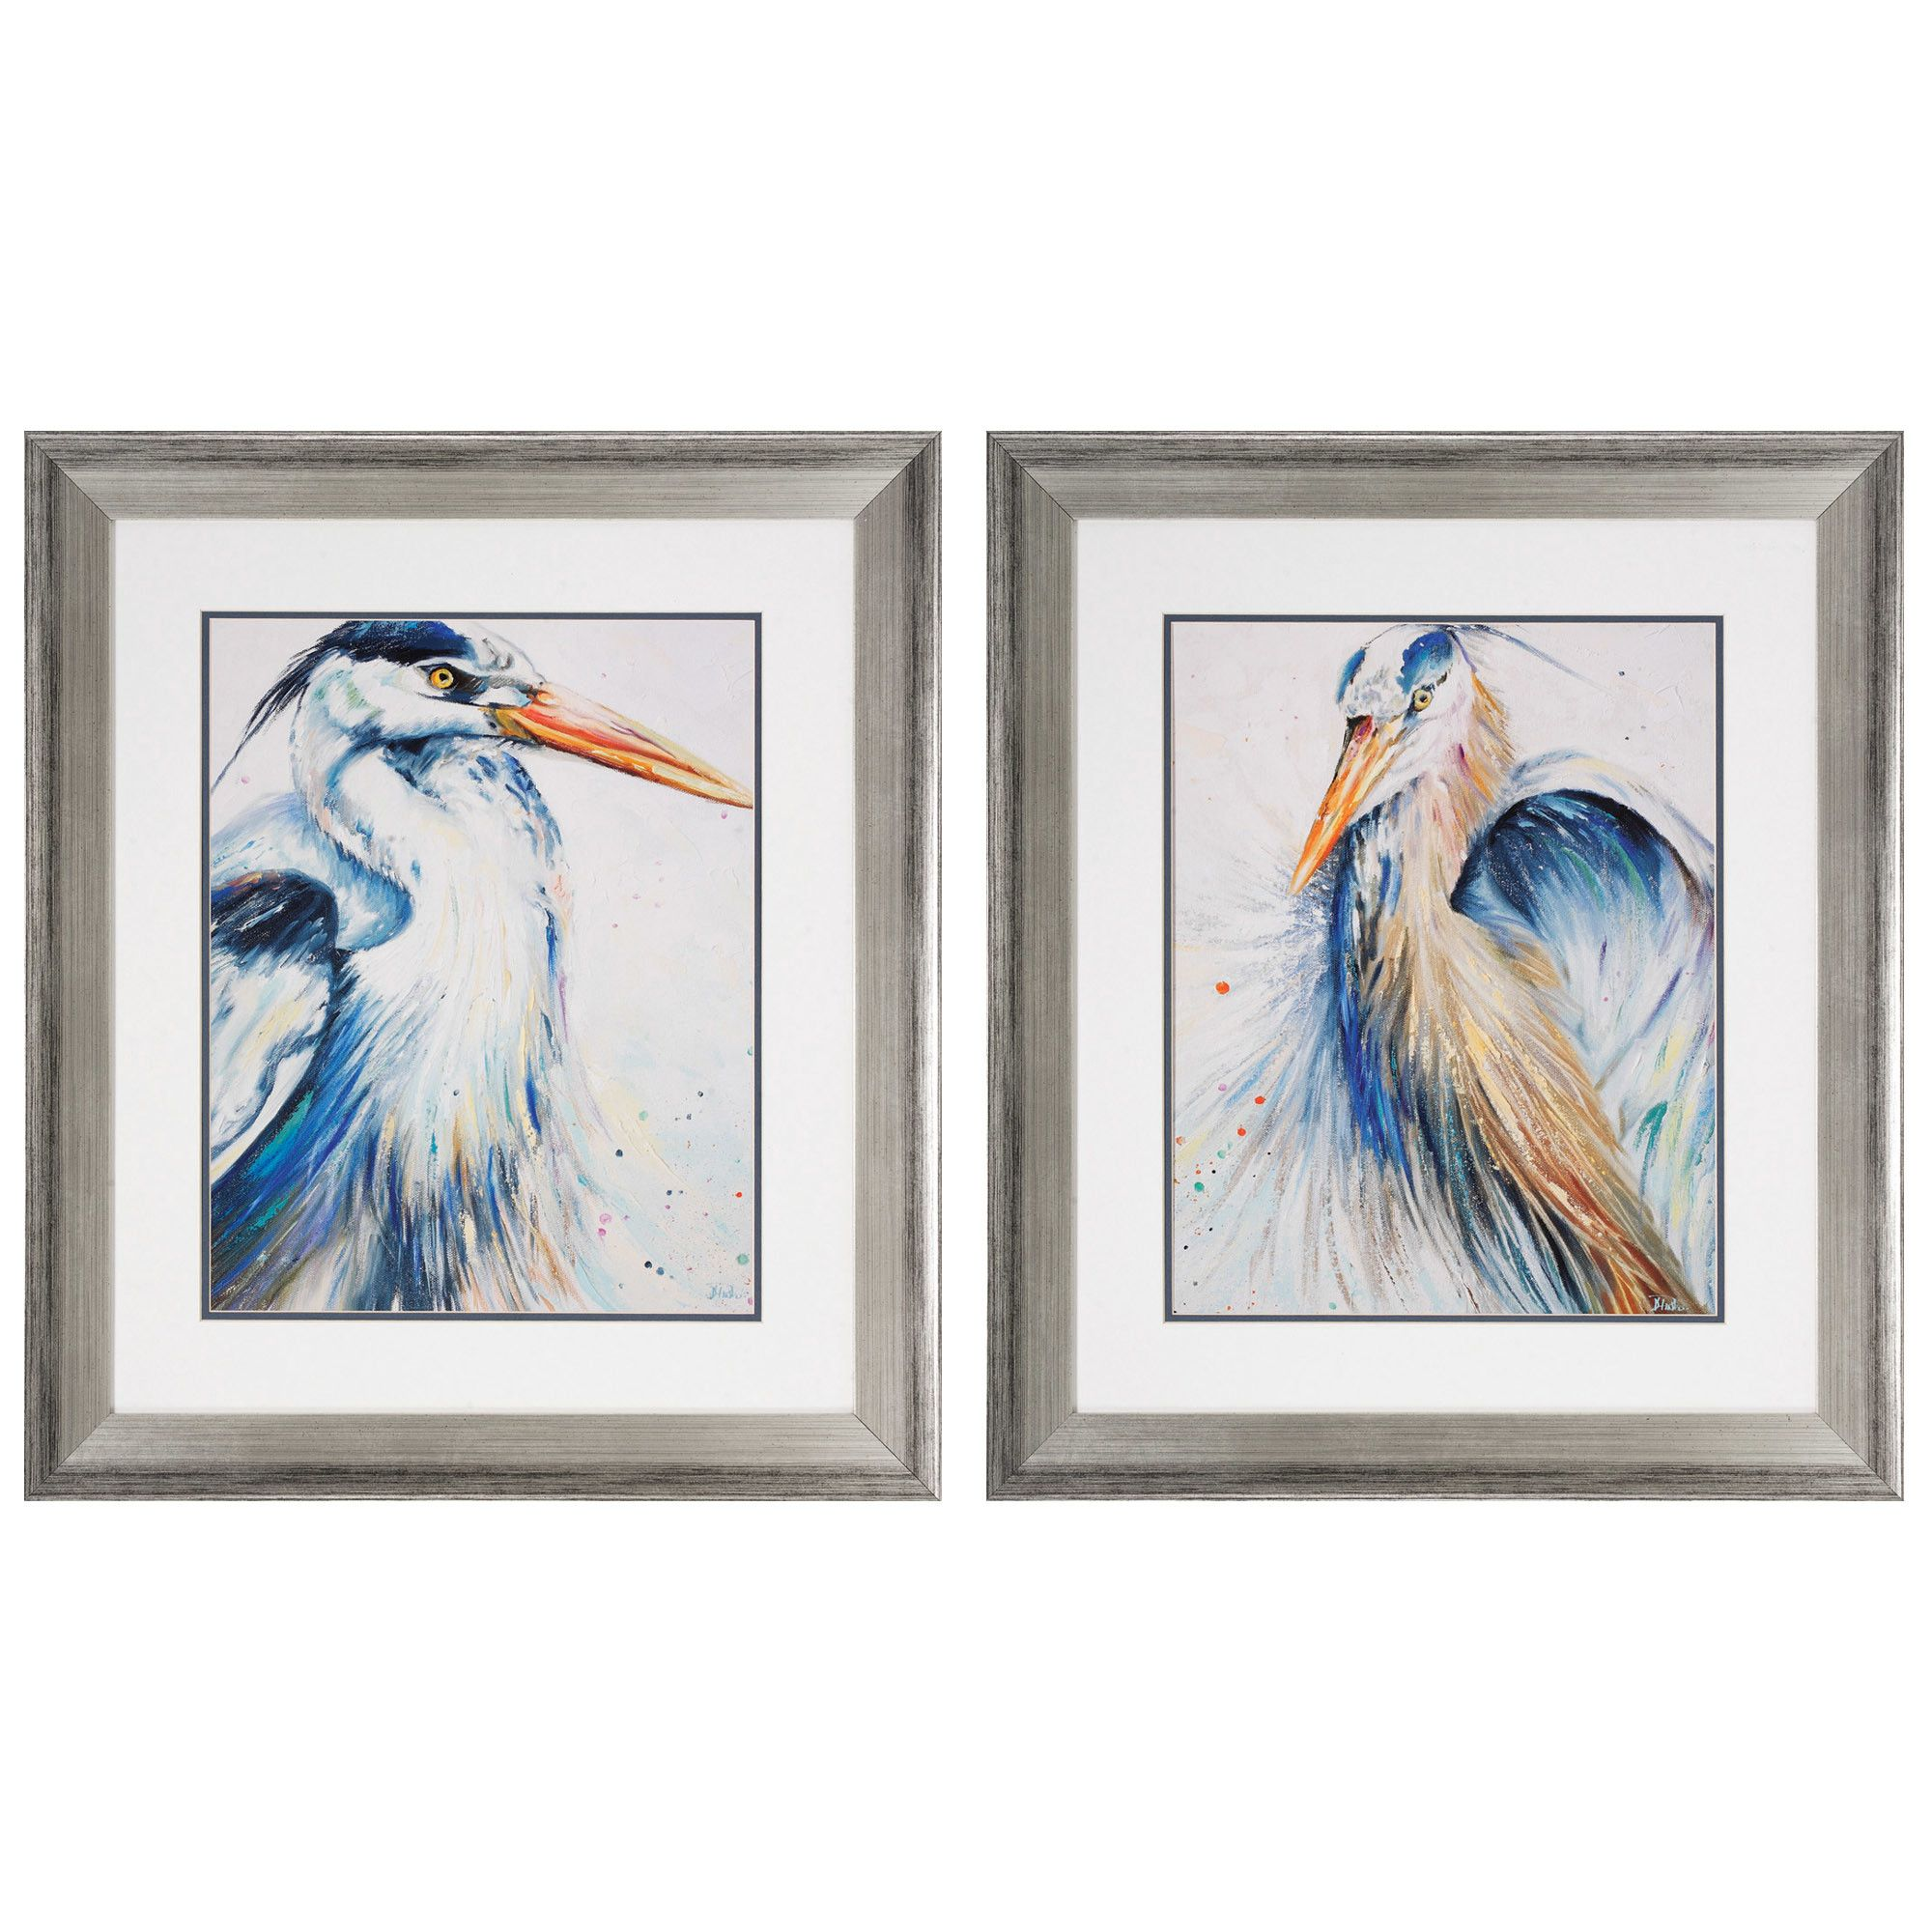 Shop wayfair for all wall art to match every style and budget enjoy